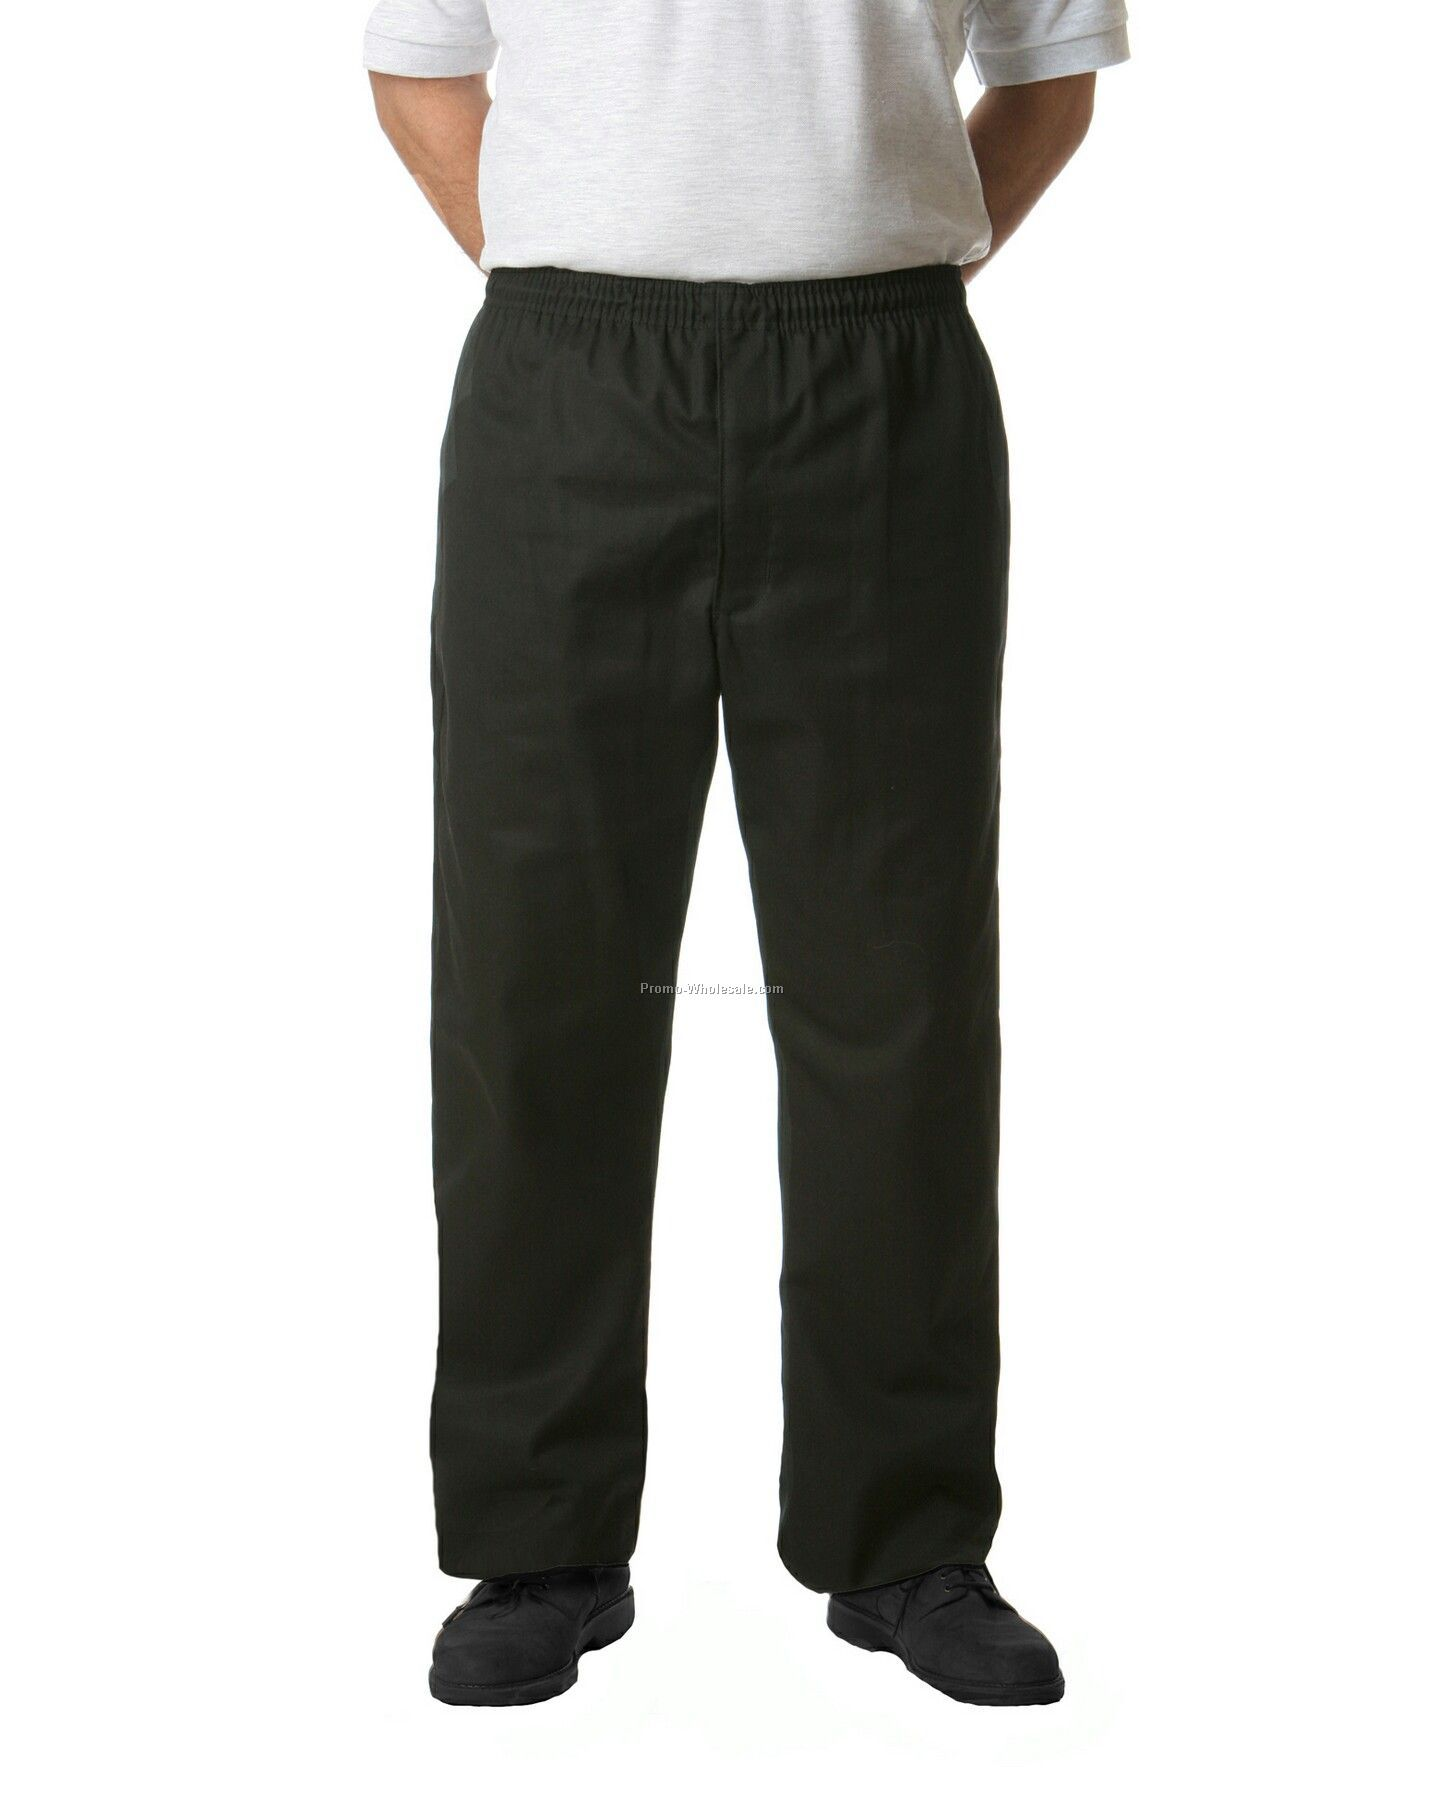 Chef Baggies Pants (X-large/ White)